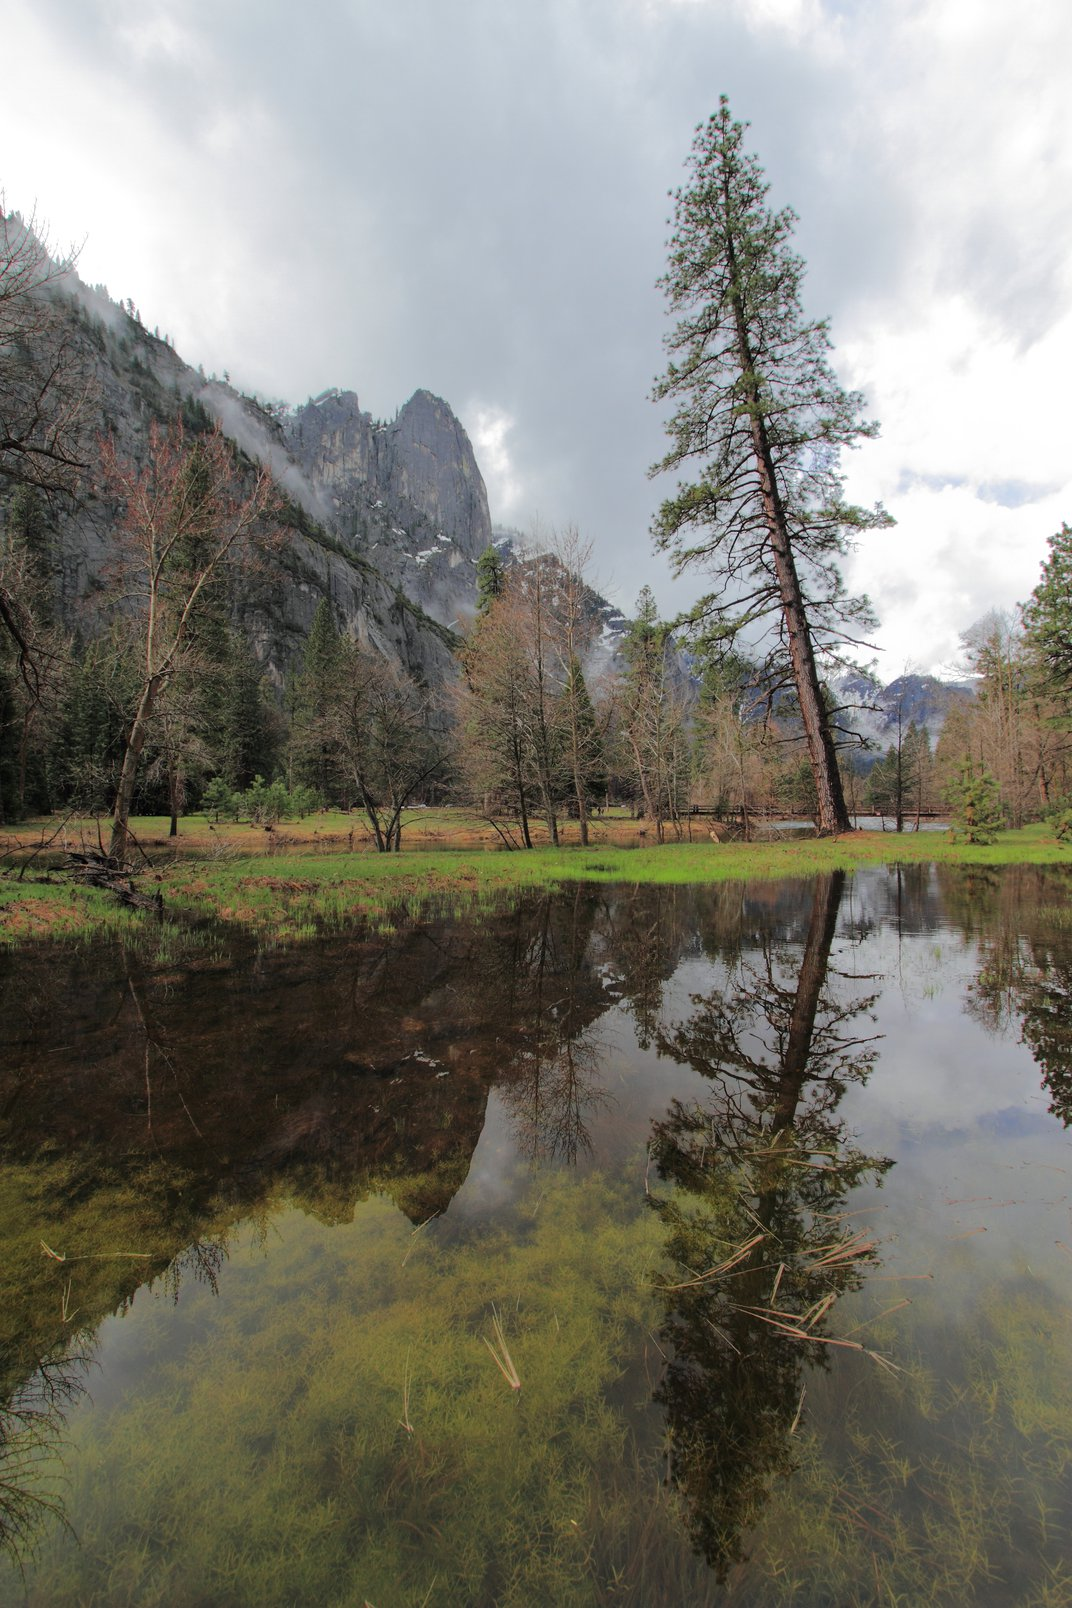 On a morning walk through the Yosemite valley I captured ...